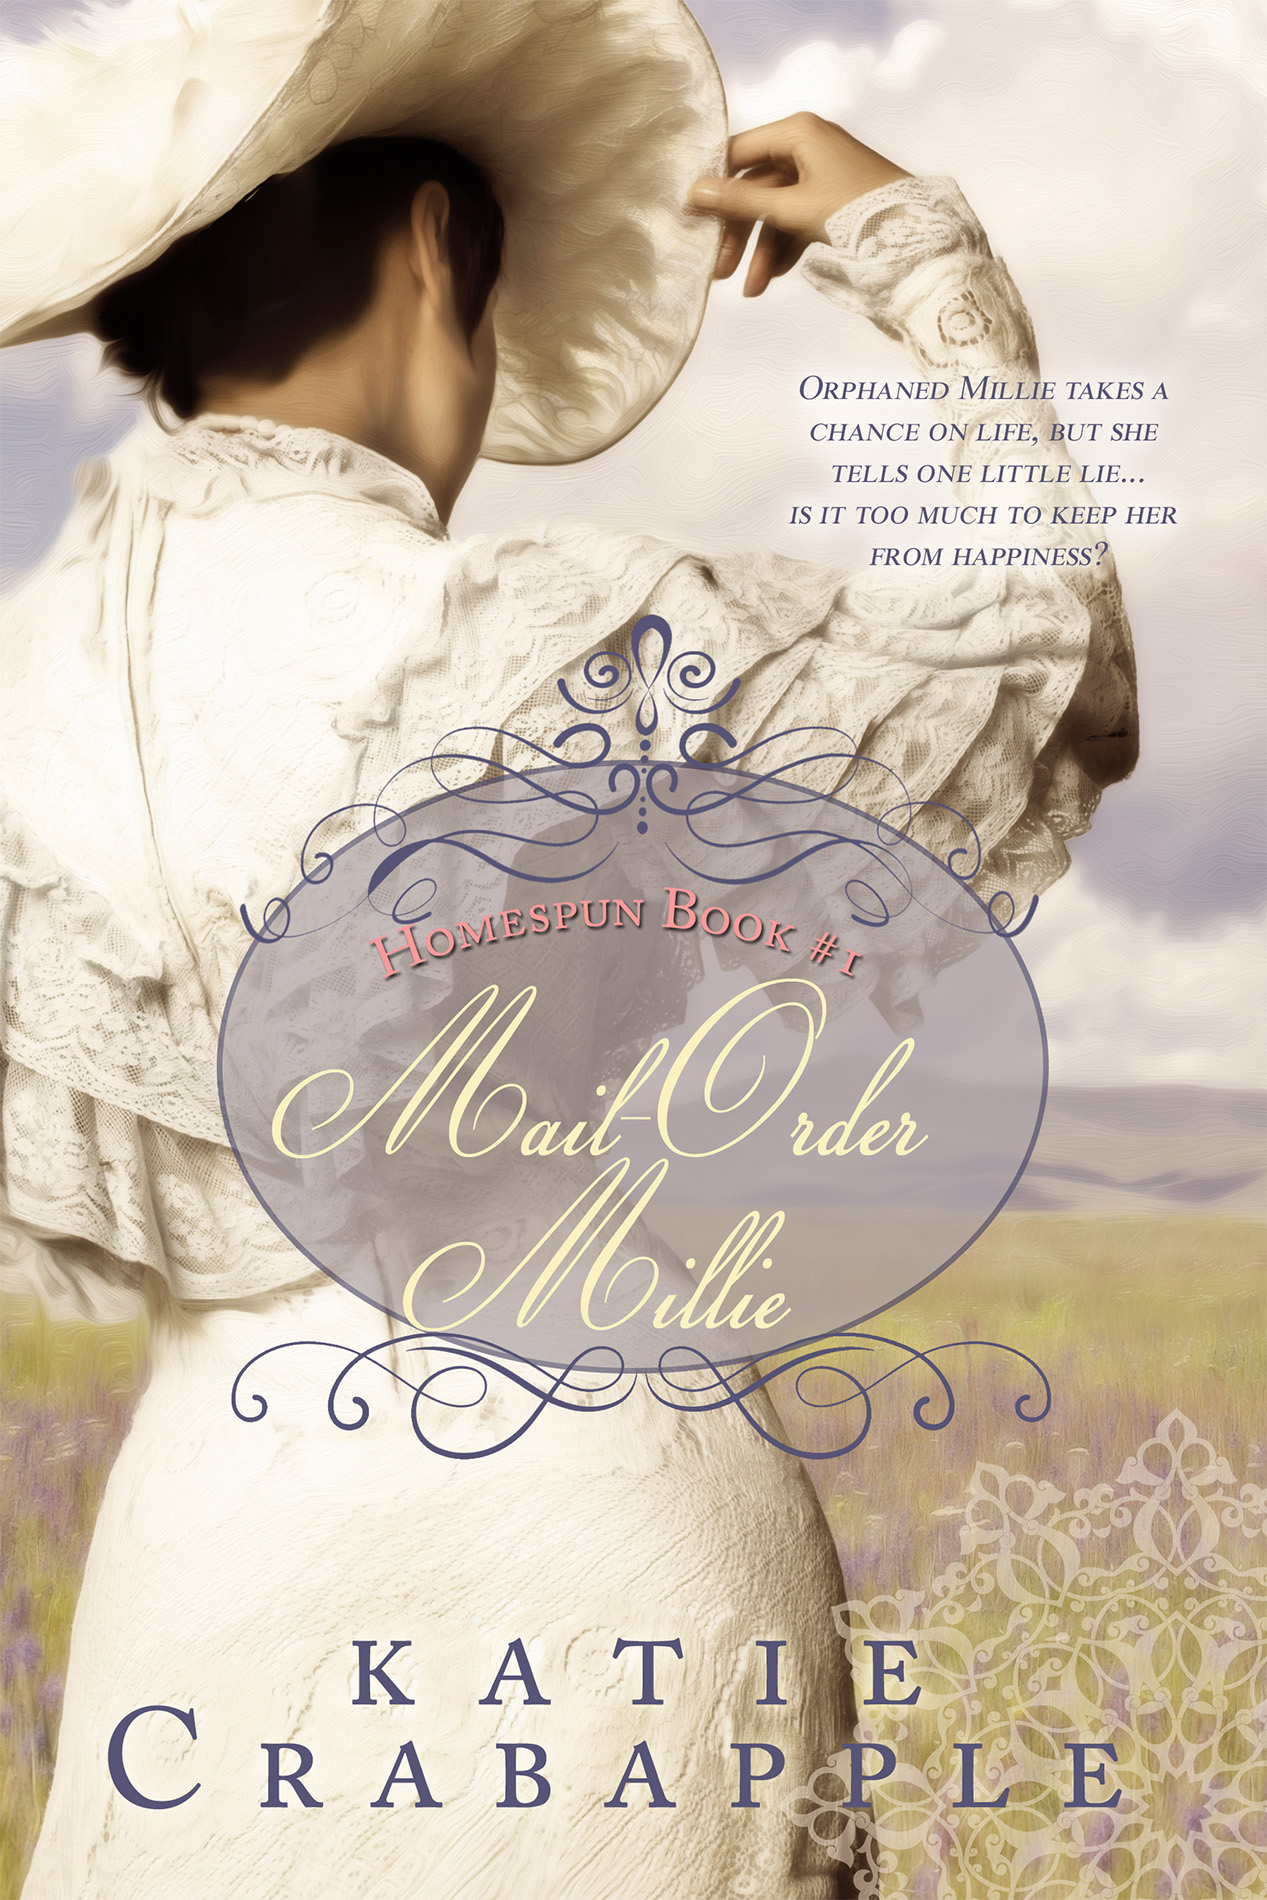 Smashwords romance mdash free ebooks mdash most downloaded first mail order millie by katie crabapple fandeluxe Image collections